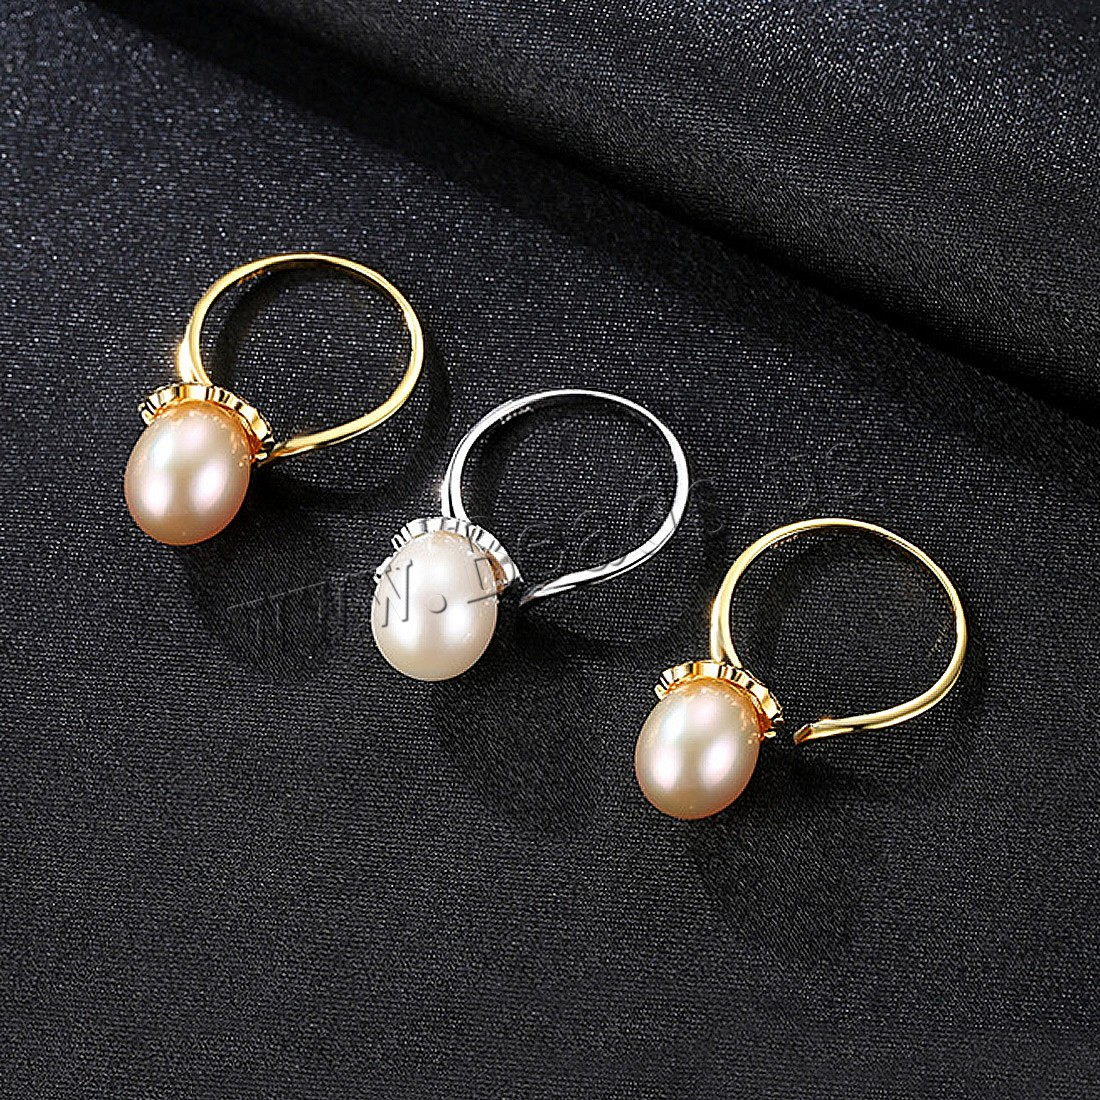 Buy Freshwater Pearl Finger Ring Brass Freshwater Pearl plated woman & cubic zirconia colors choice nickel lead & cadmium free 9.58mm US Ring Size:7-9 Sold PC